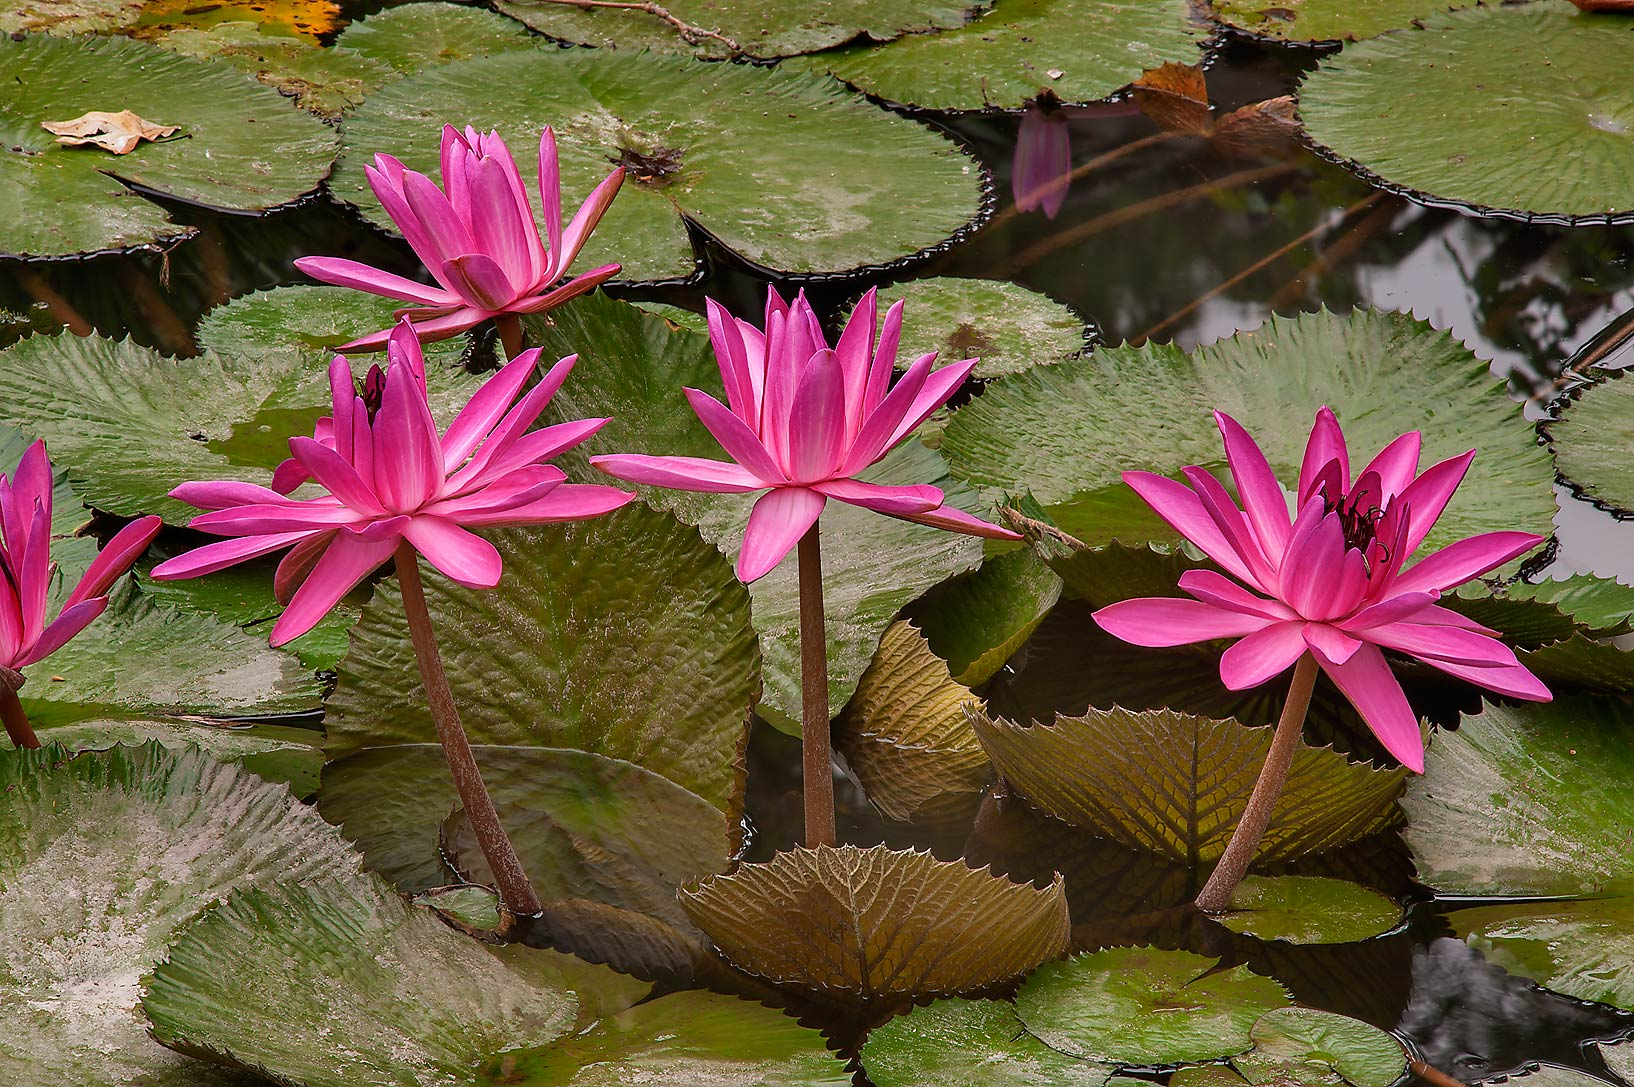 Pink water lilies in Antique Rose Emporium. Independence, Texas